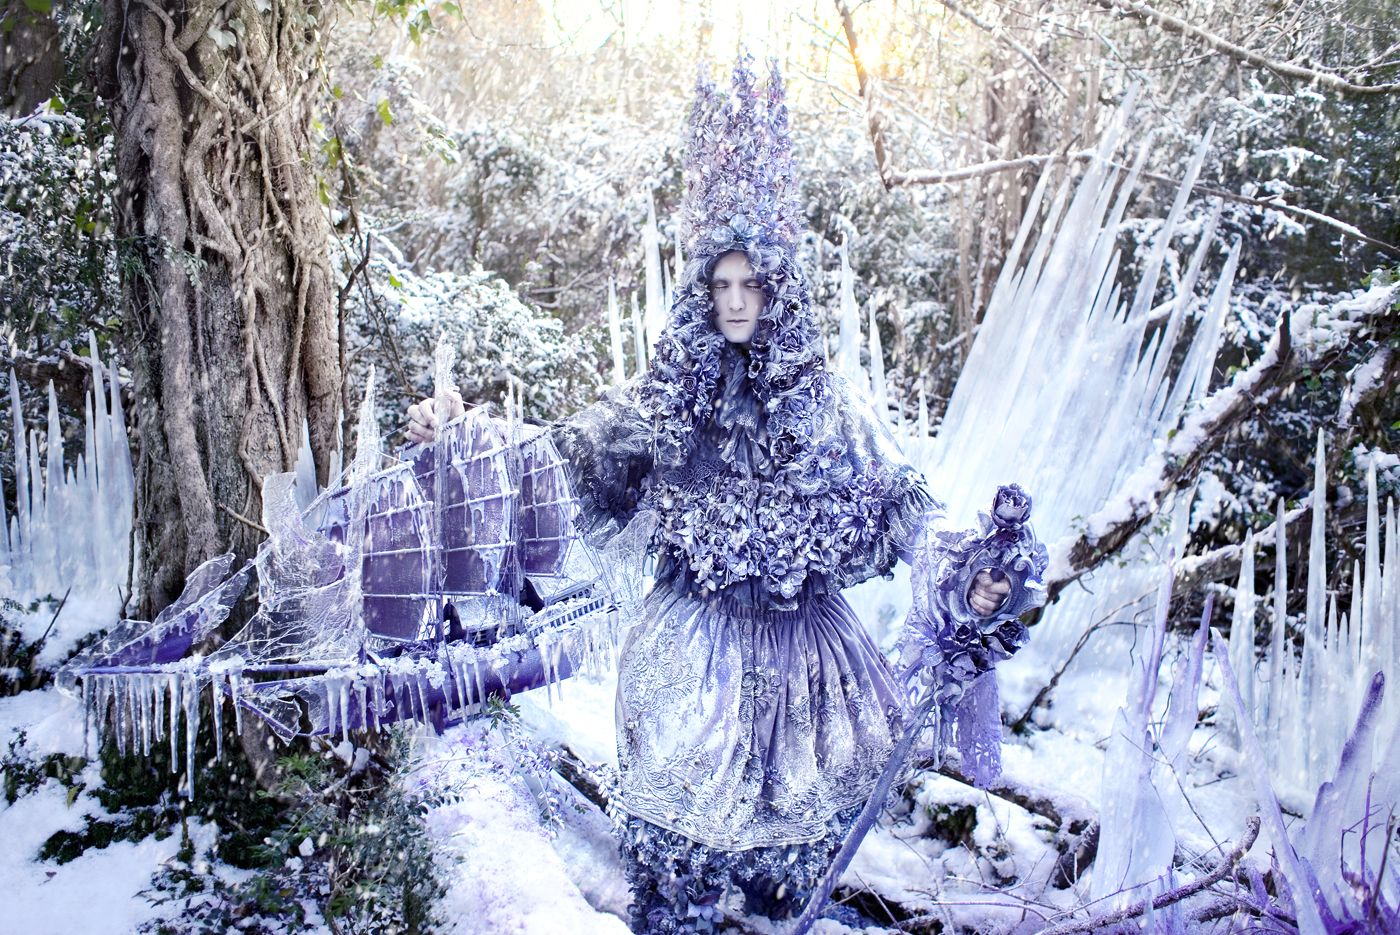 The Thousand Empty Days of a Frozen Heart - Kirsty Mitchell Photography